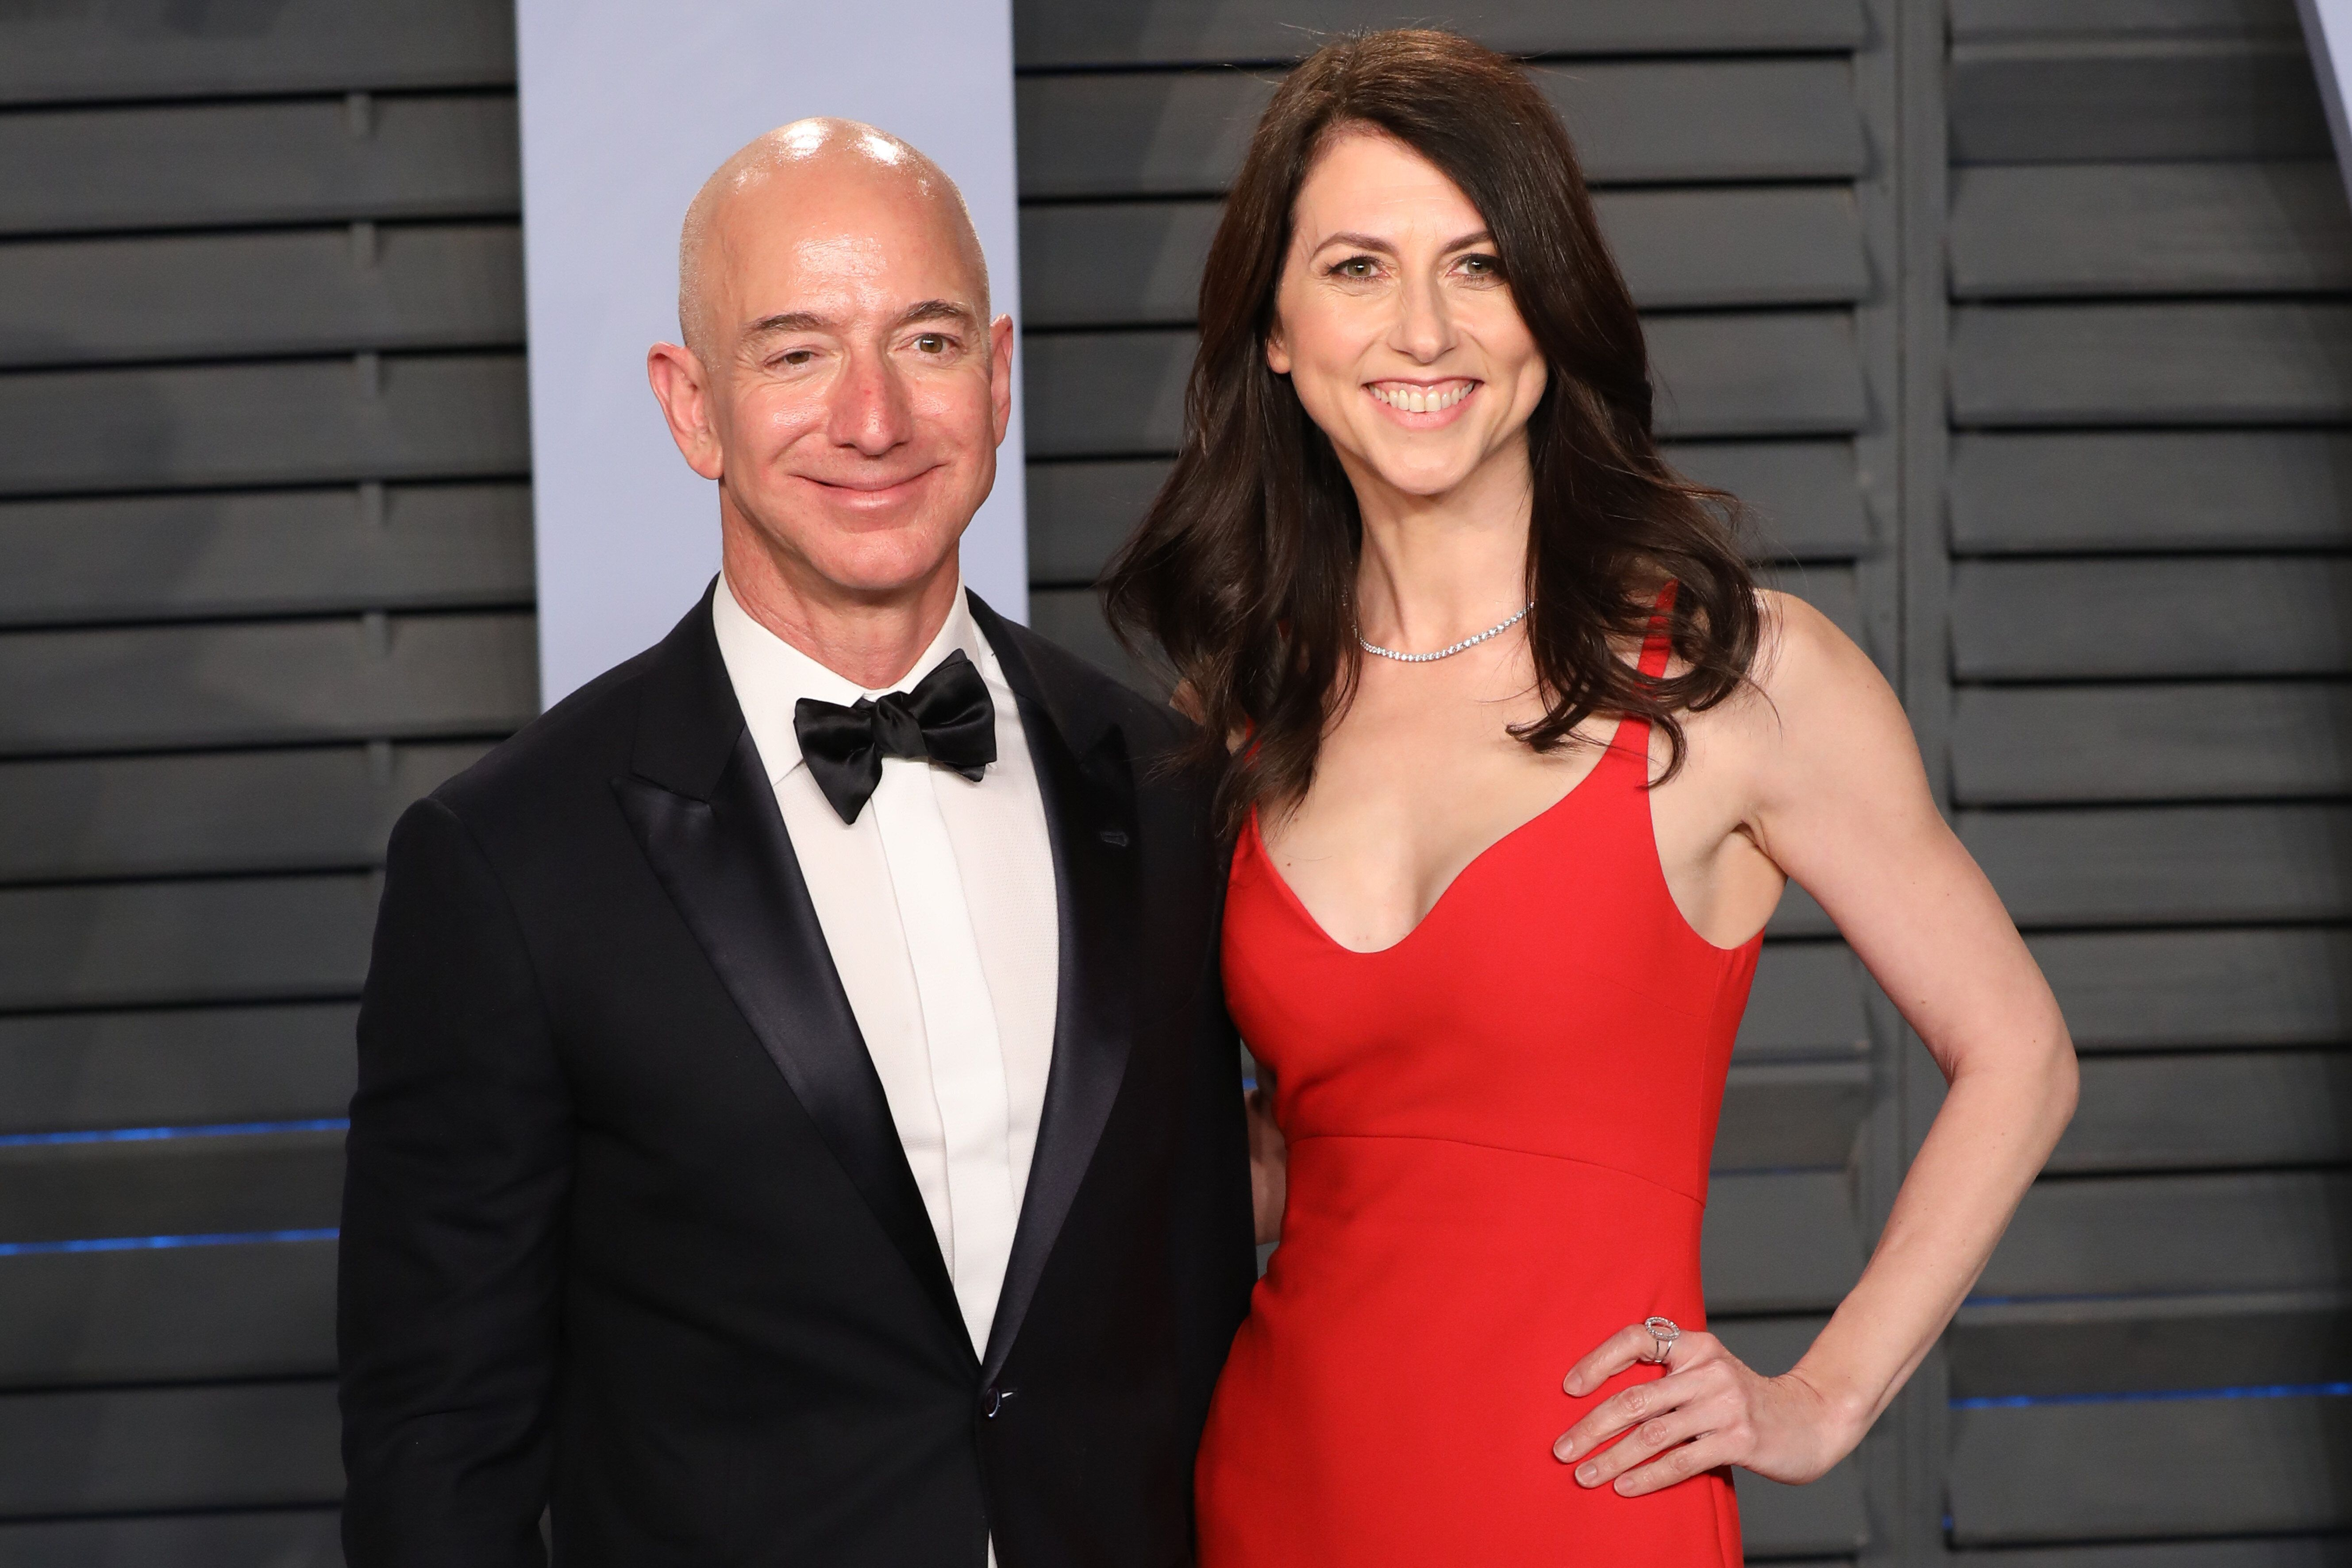 Jeff Bezos and MacKenzie Bezos attend the 2018 Vanity Fair Oscar Party hosted by Radhika Jones at Wallis Annenberg Center for